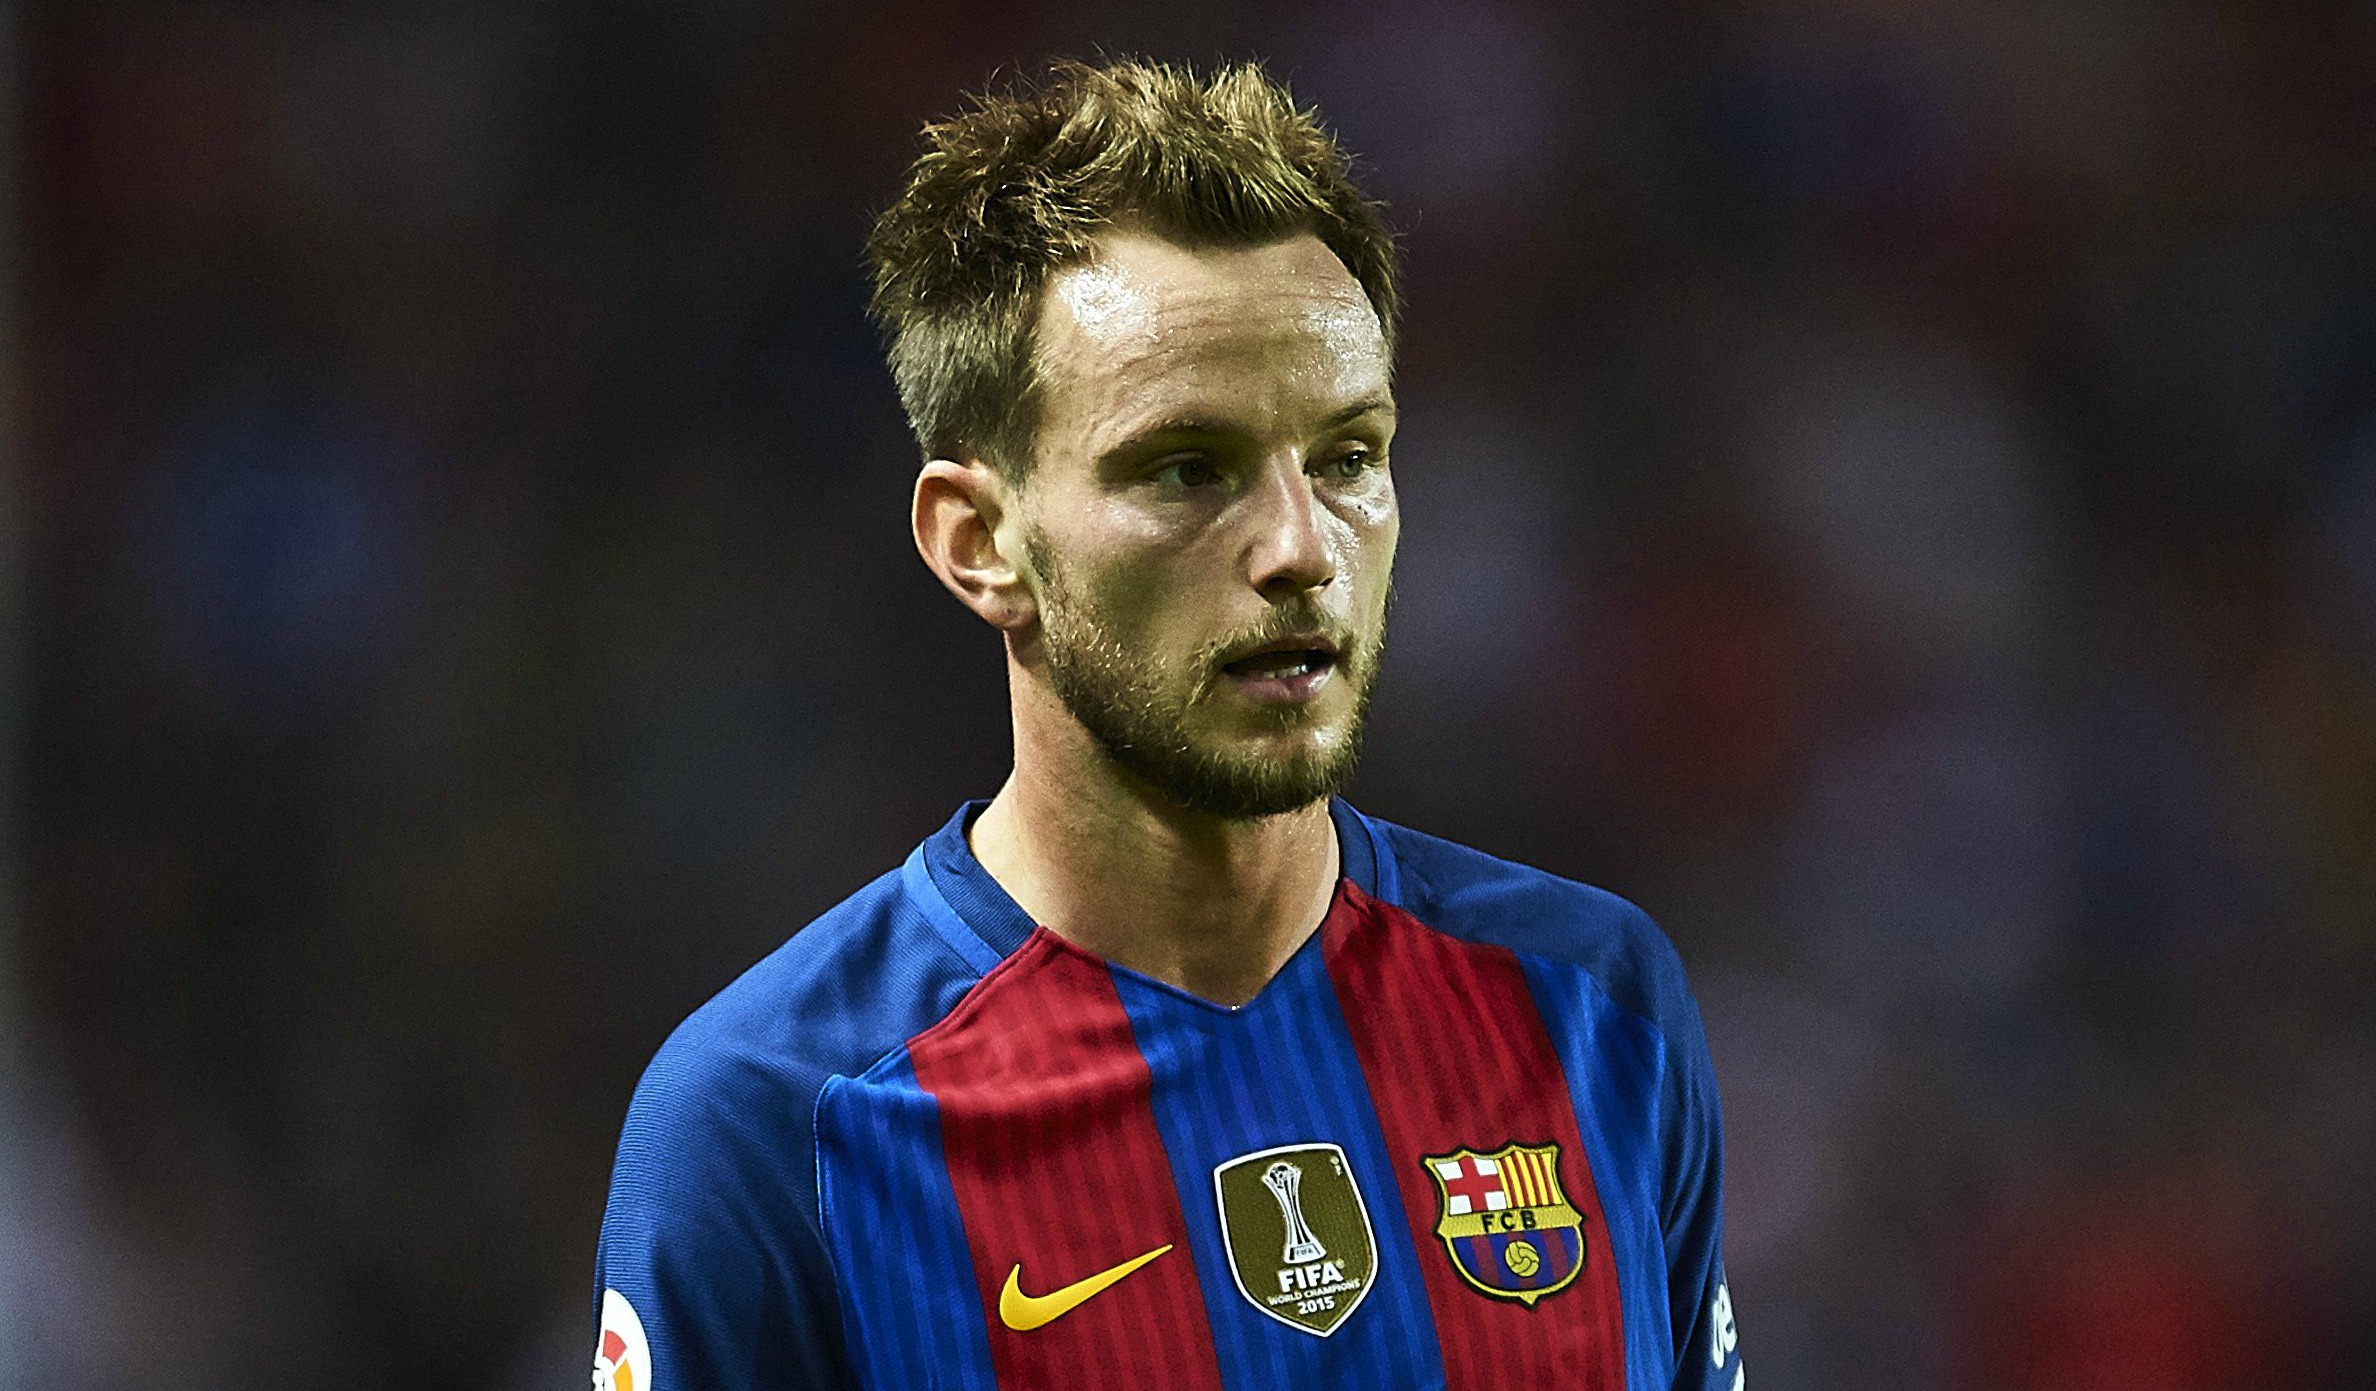 Manchester United plotting transfer move for Ivan Rakitic before midfielder signs new Barcelona deal